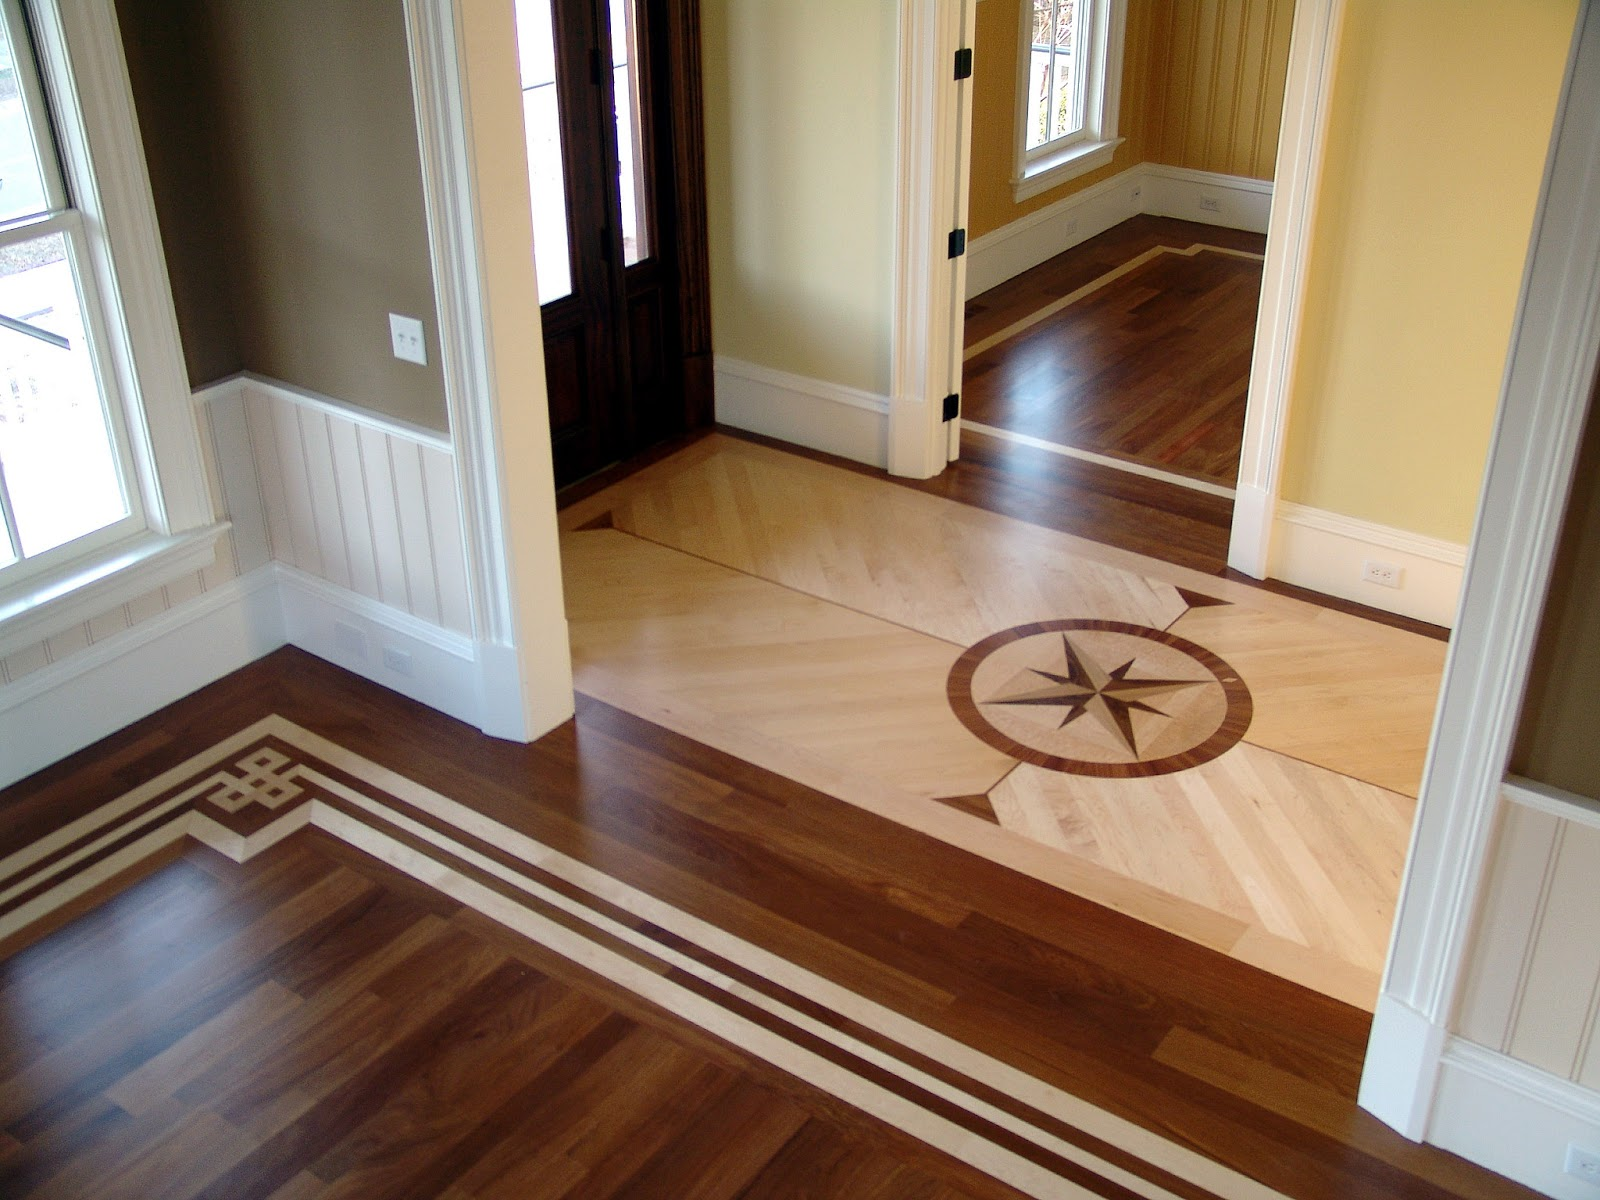 Hardwood flooring installer three great solutions to your for Hardwood floor designs ... & Hardwood Floor Designs - canopy hardwood flooring 2 photos floor ...